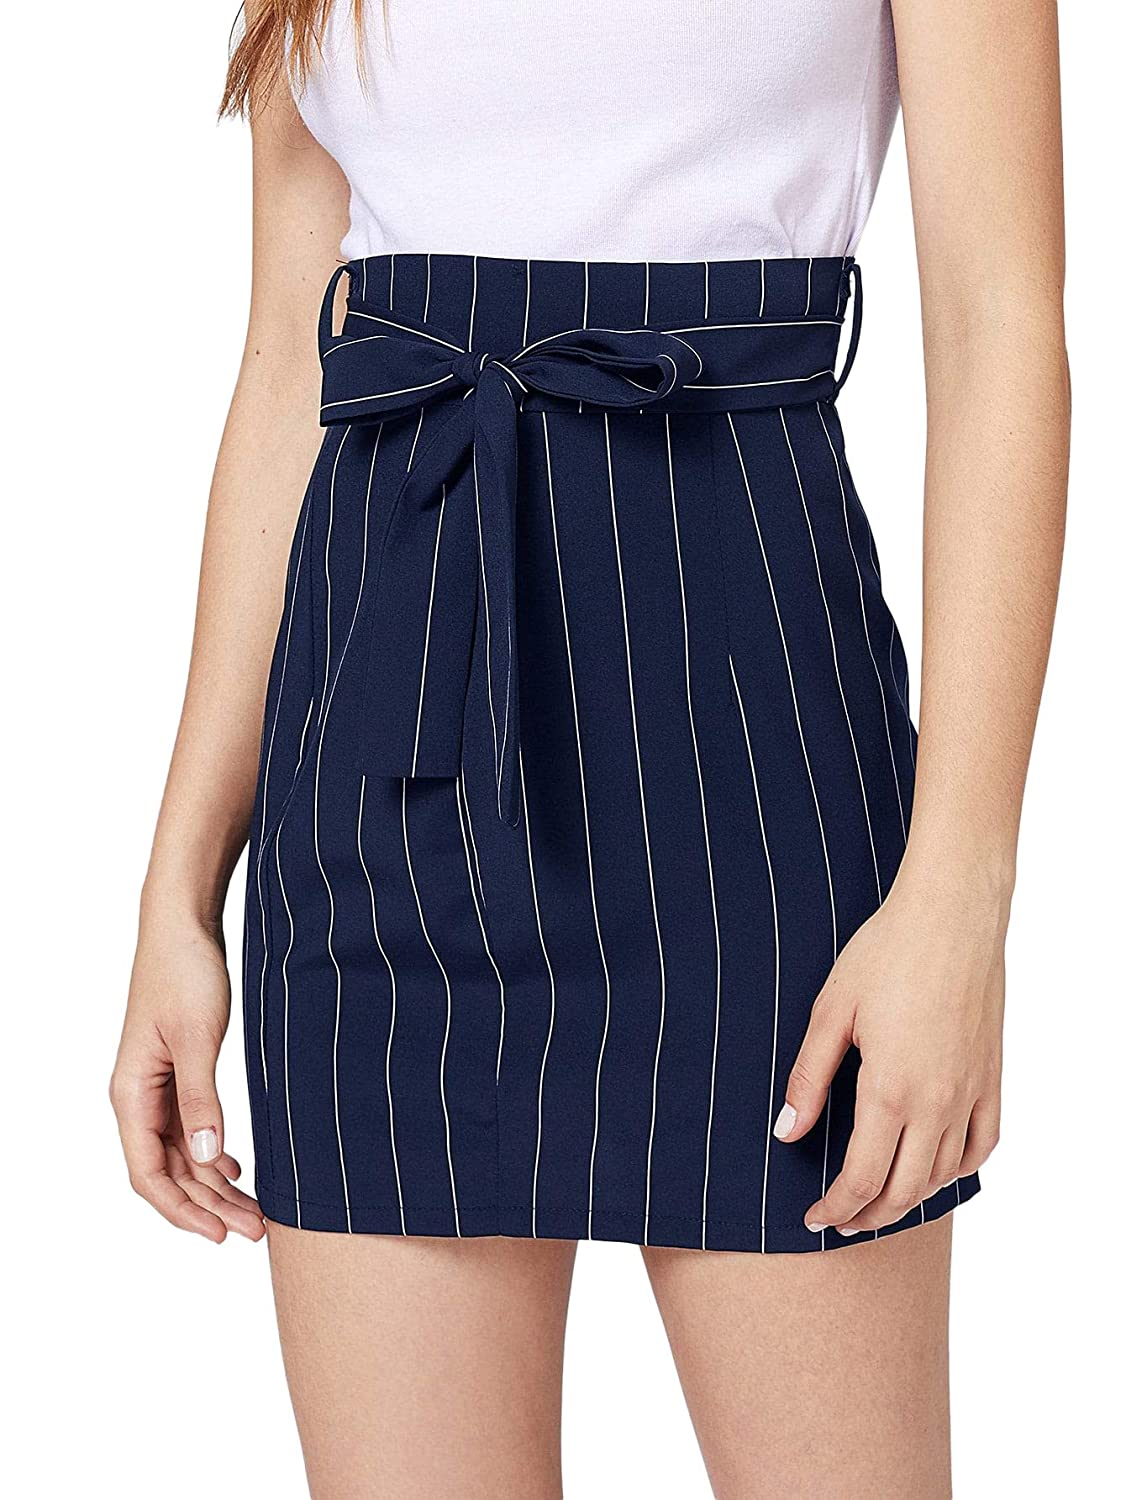 WDIRARA Women's Slim Fit High Waist Knot Front greenical Striped Skirt Navy S